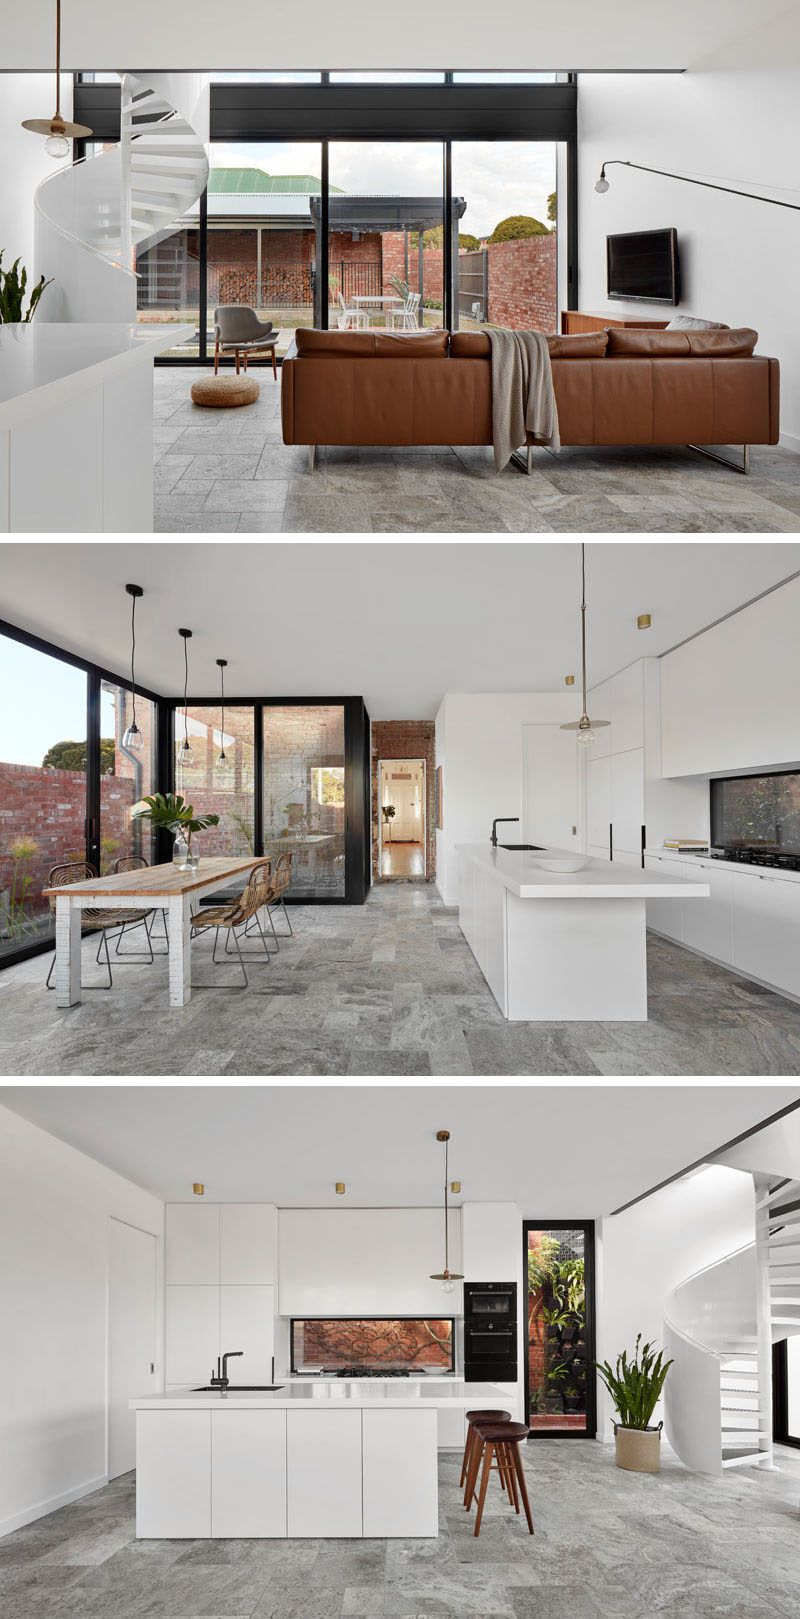 Modscape Added A Modern Extension With A Mezzanine Bedroom To A Brick House In Australia Interior Design Kitchen Contemporary Mezzanine Bedroom Interior Design Kitchen Small